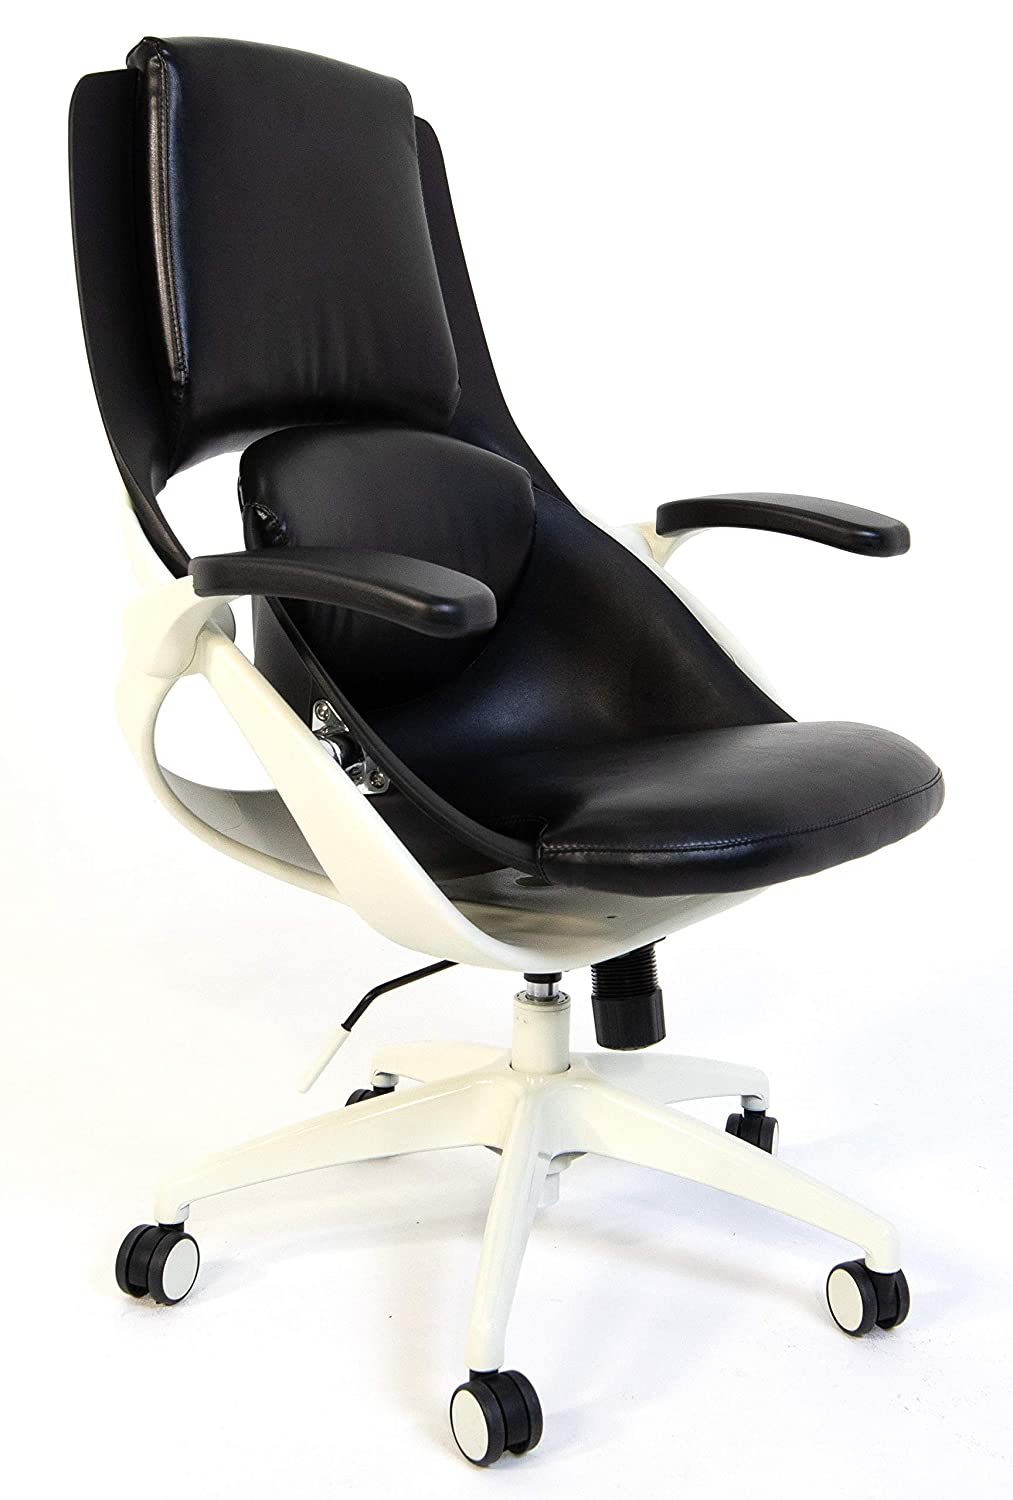 the All33 BackStrong C1 chair